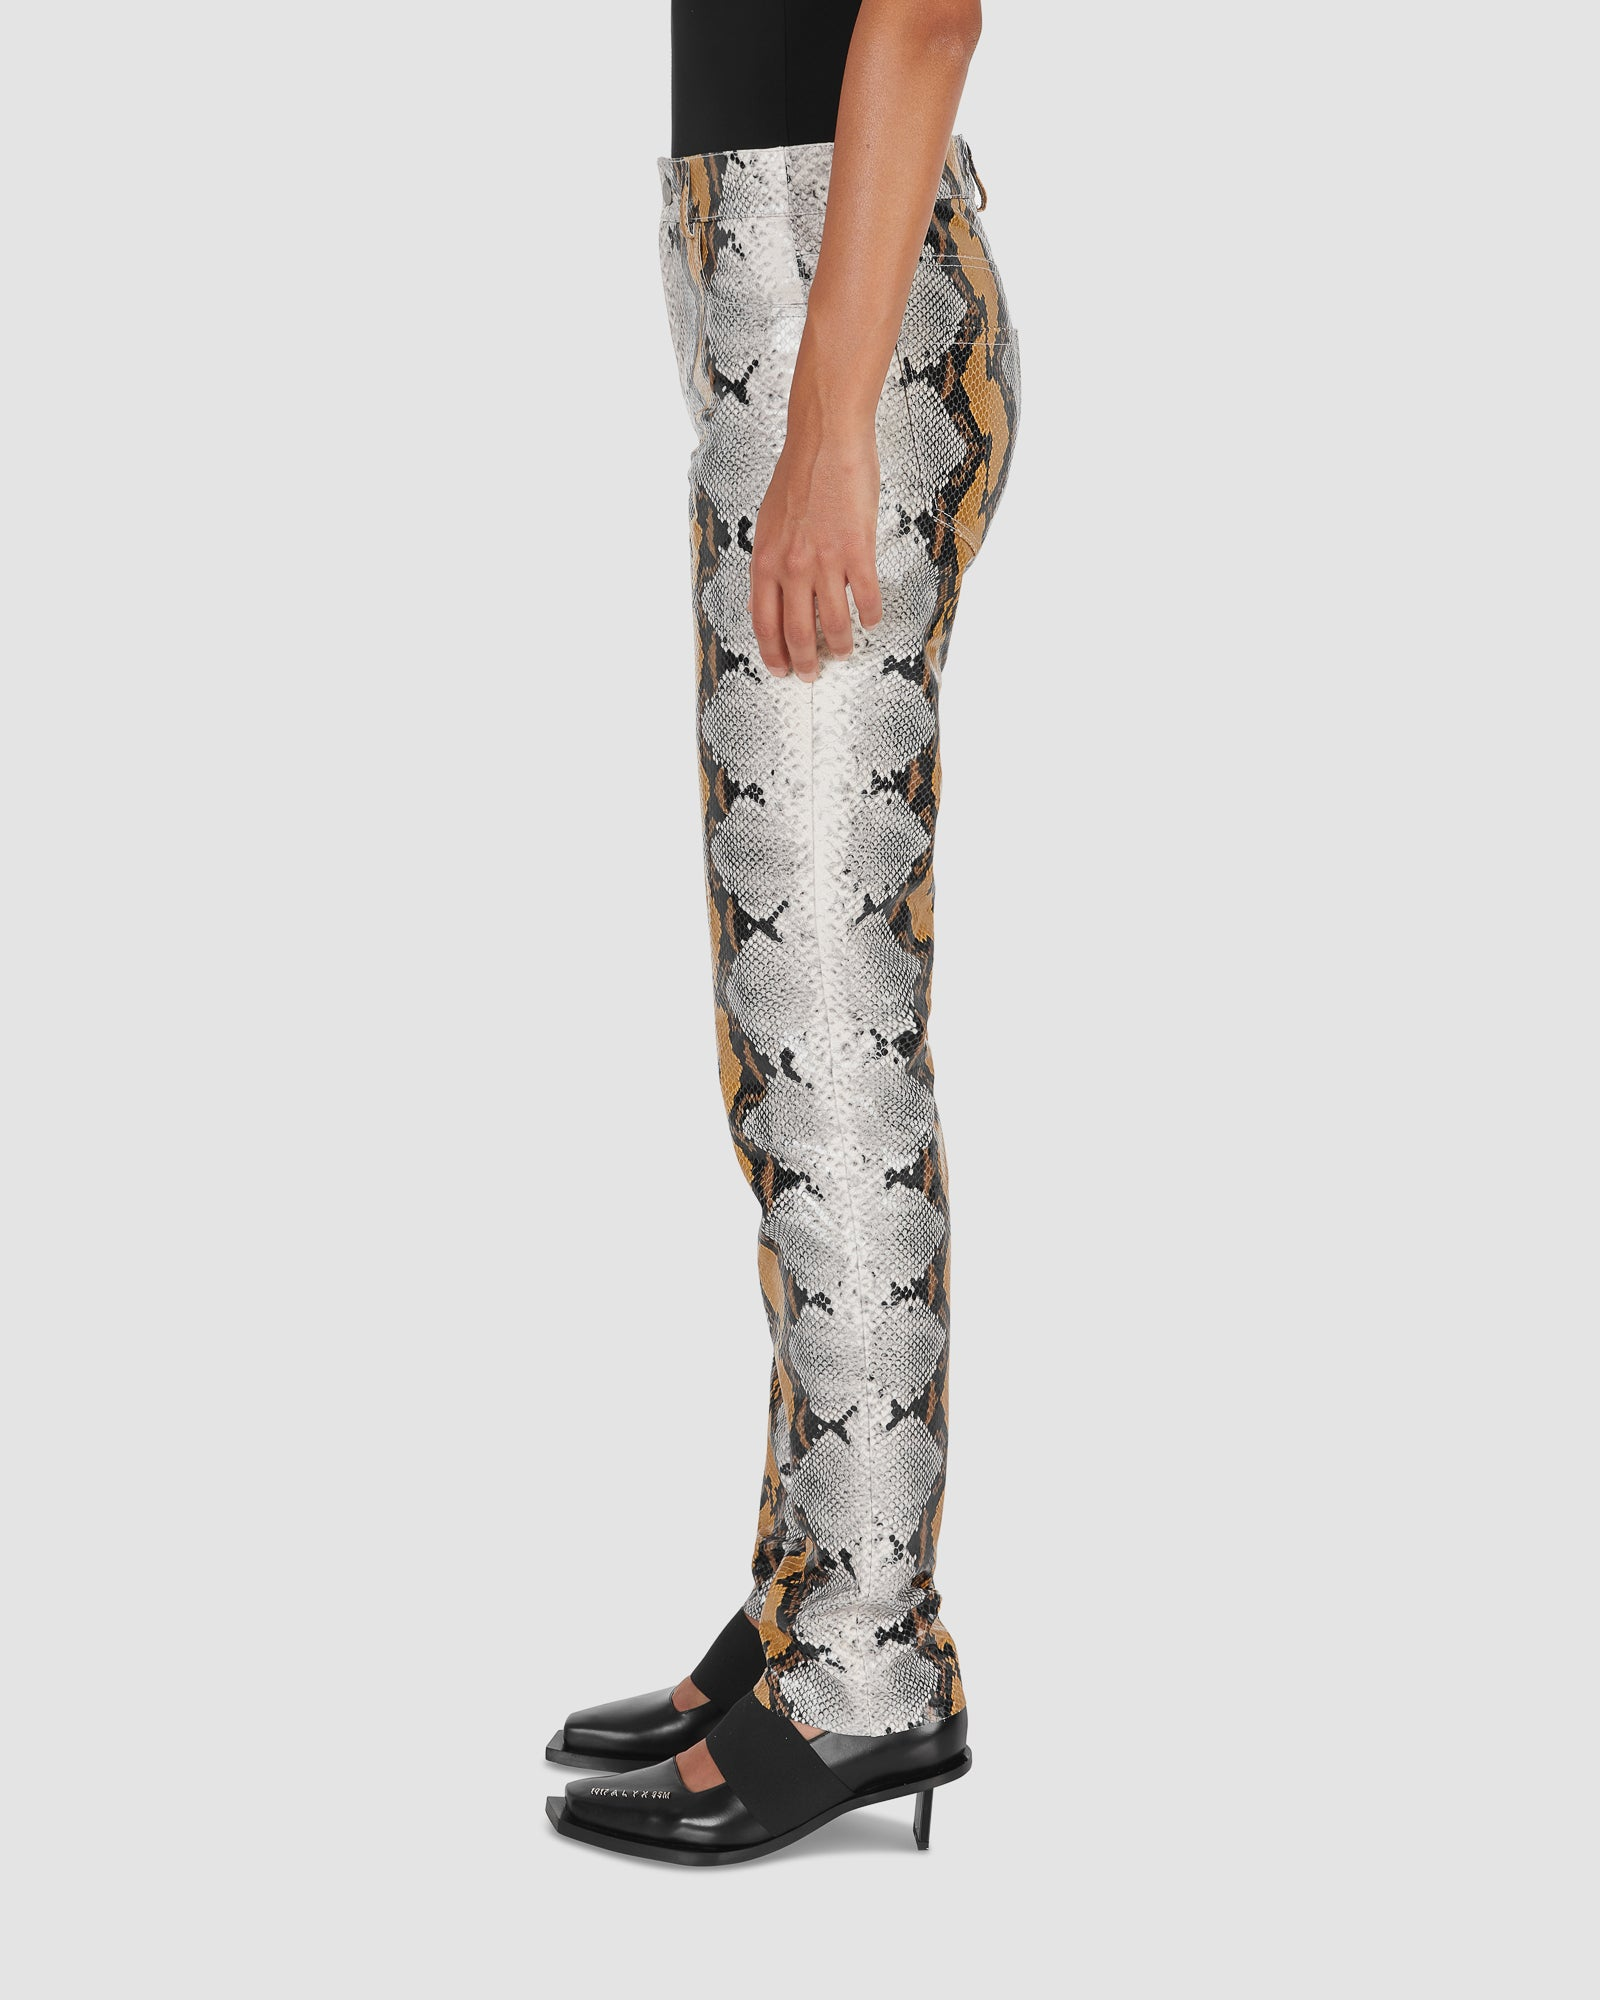 ANIMAL PRINT LEATHER PANT